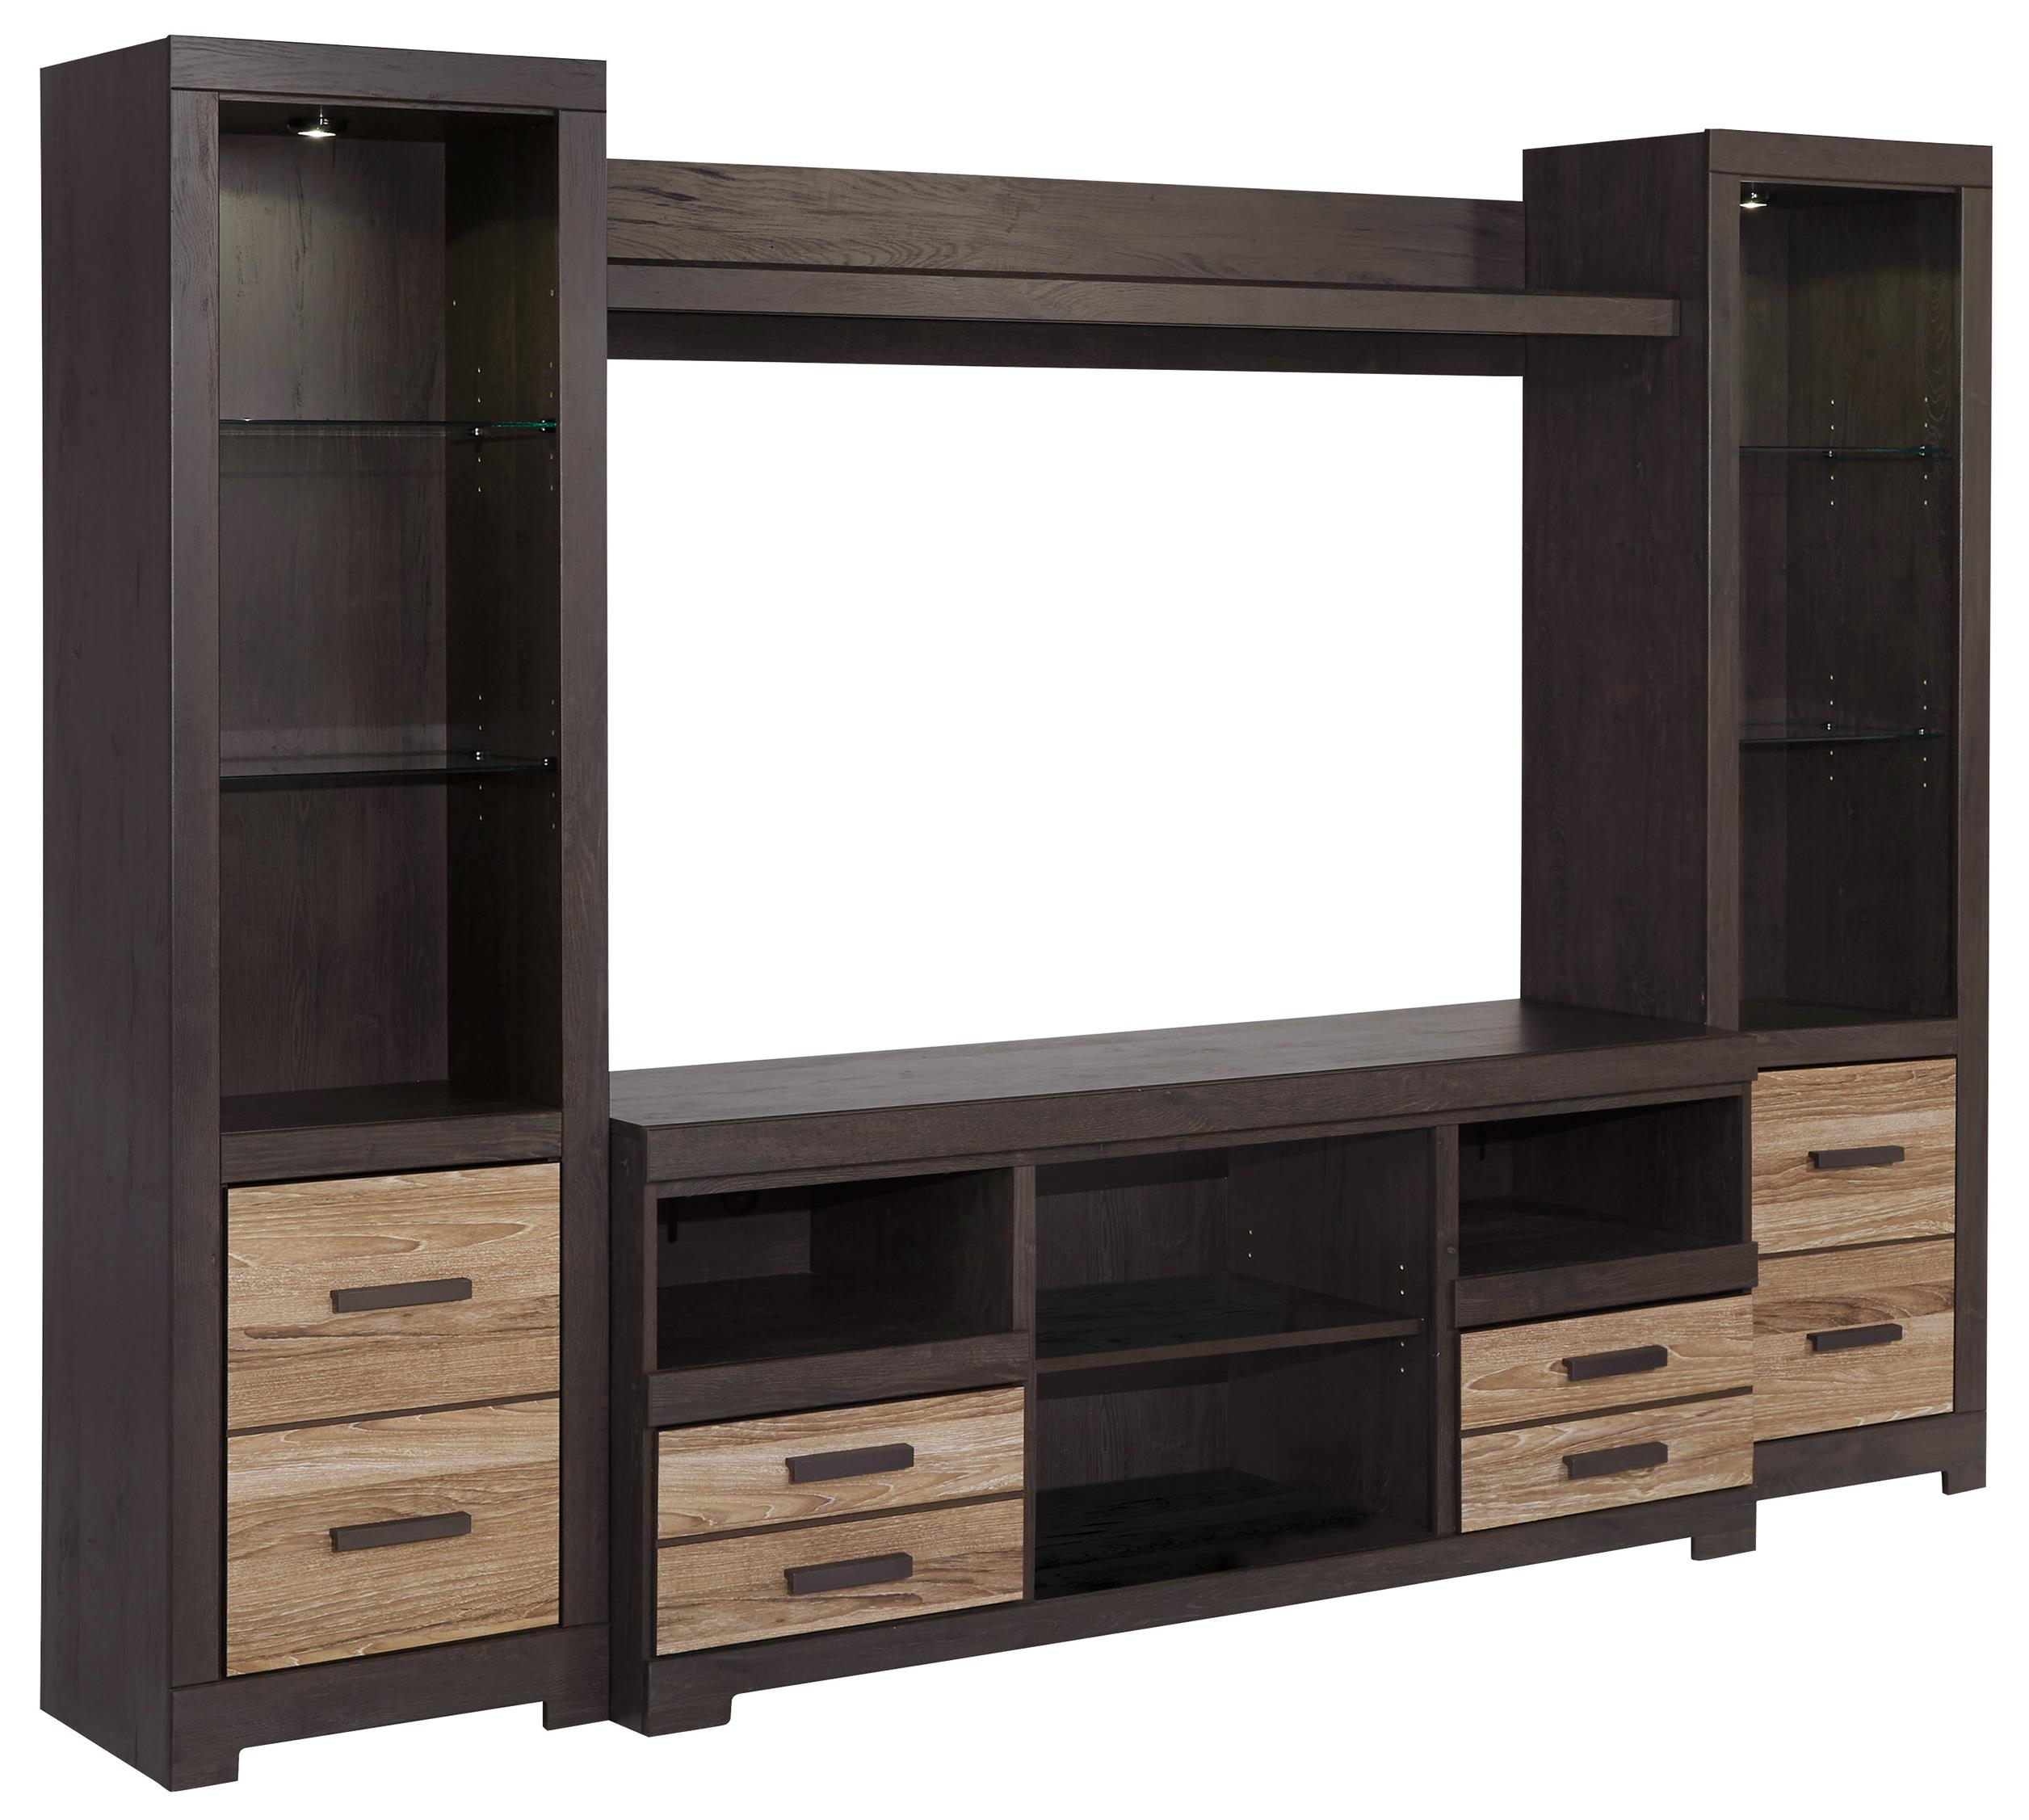 gabriela tv wfireplace mentor ashley furniture best oh stand stands cupboard dealer product store